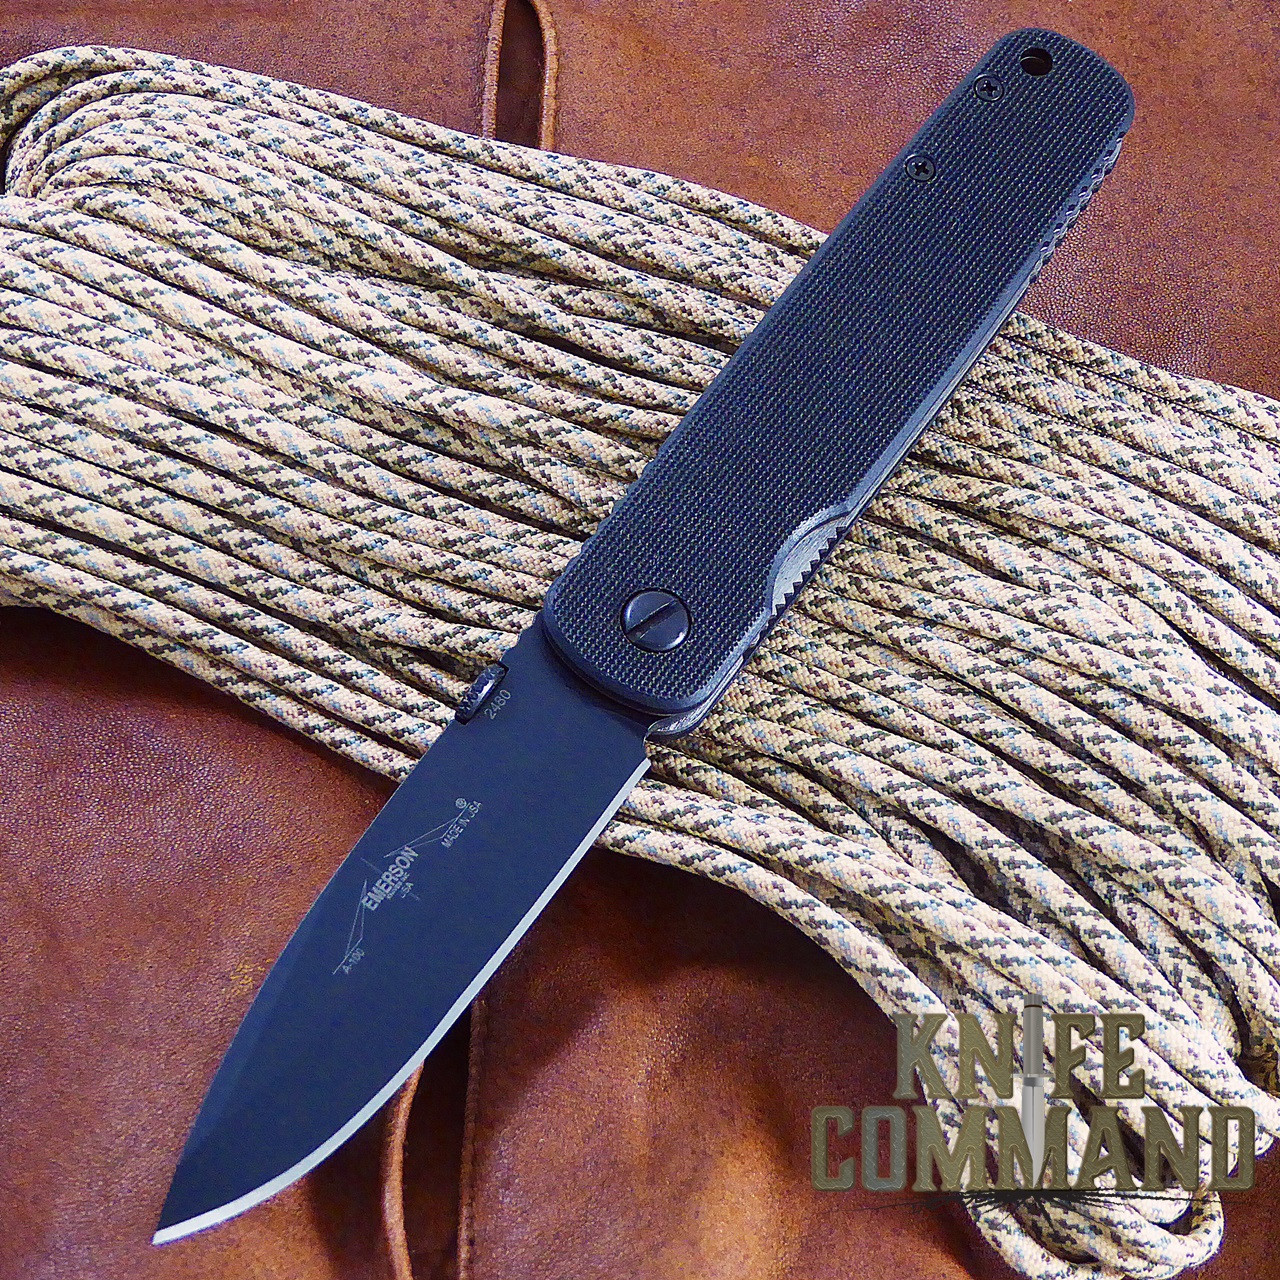 Emerson A100 SF Tactical Folding Knife 154CM.   Symmetry, Grace, and Power.